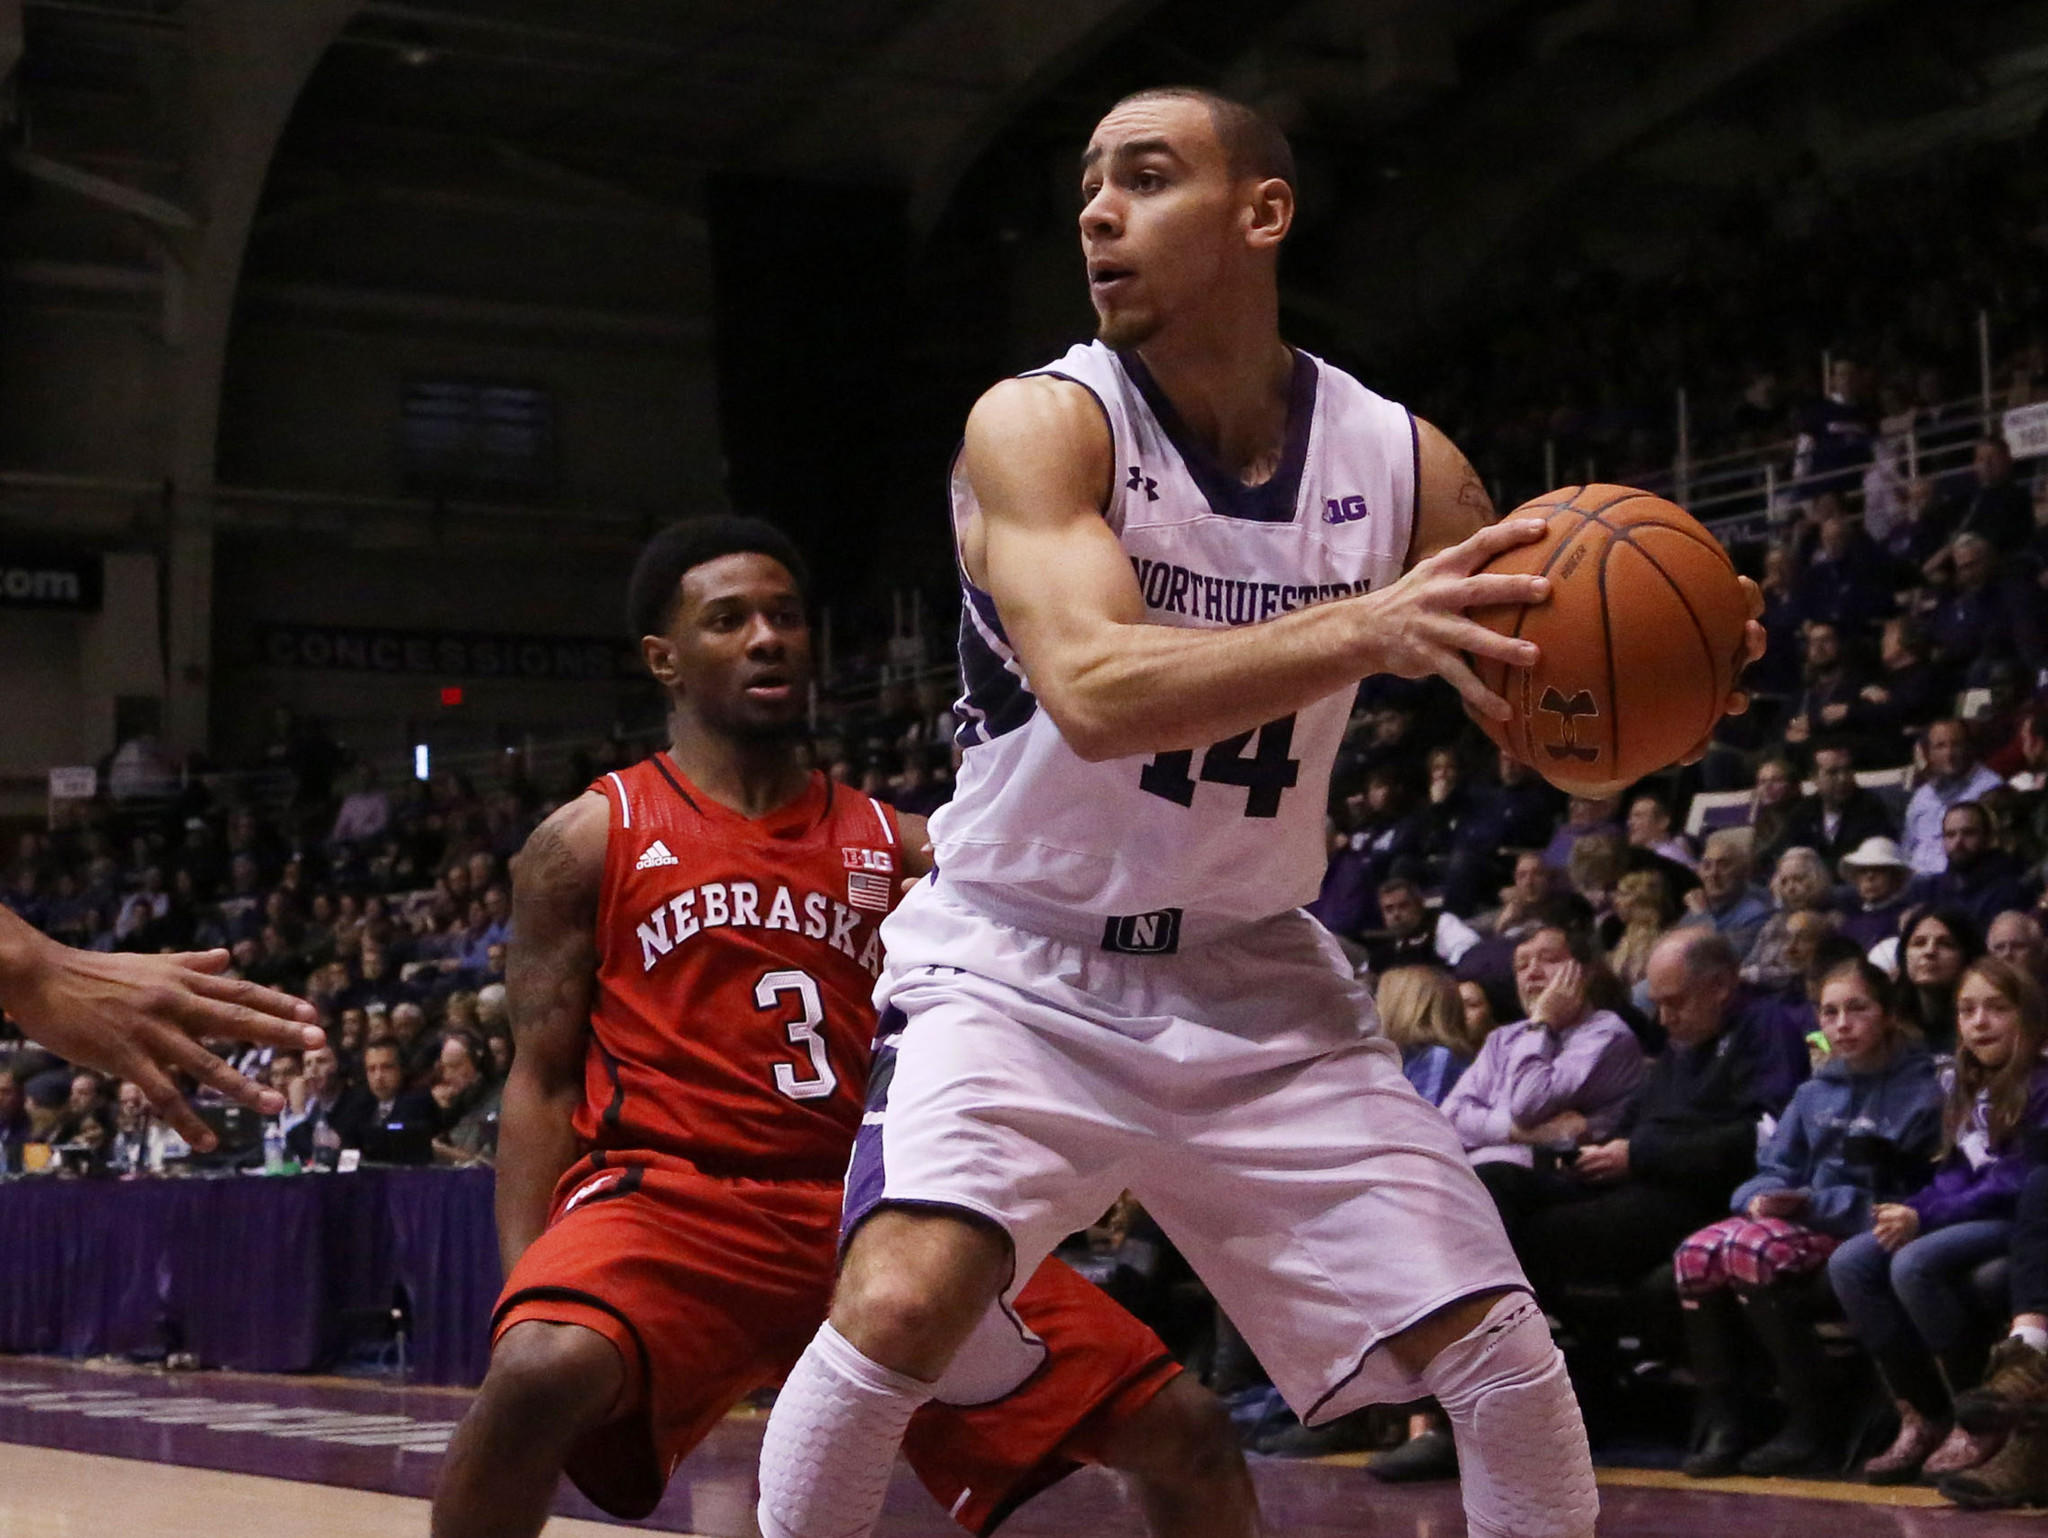 Northwestern guard Tre Demps is defended by Nebraska guard Benny Parker during the first half at Welsh-Ryan Arena.